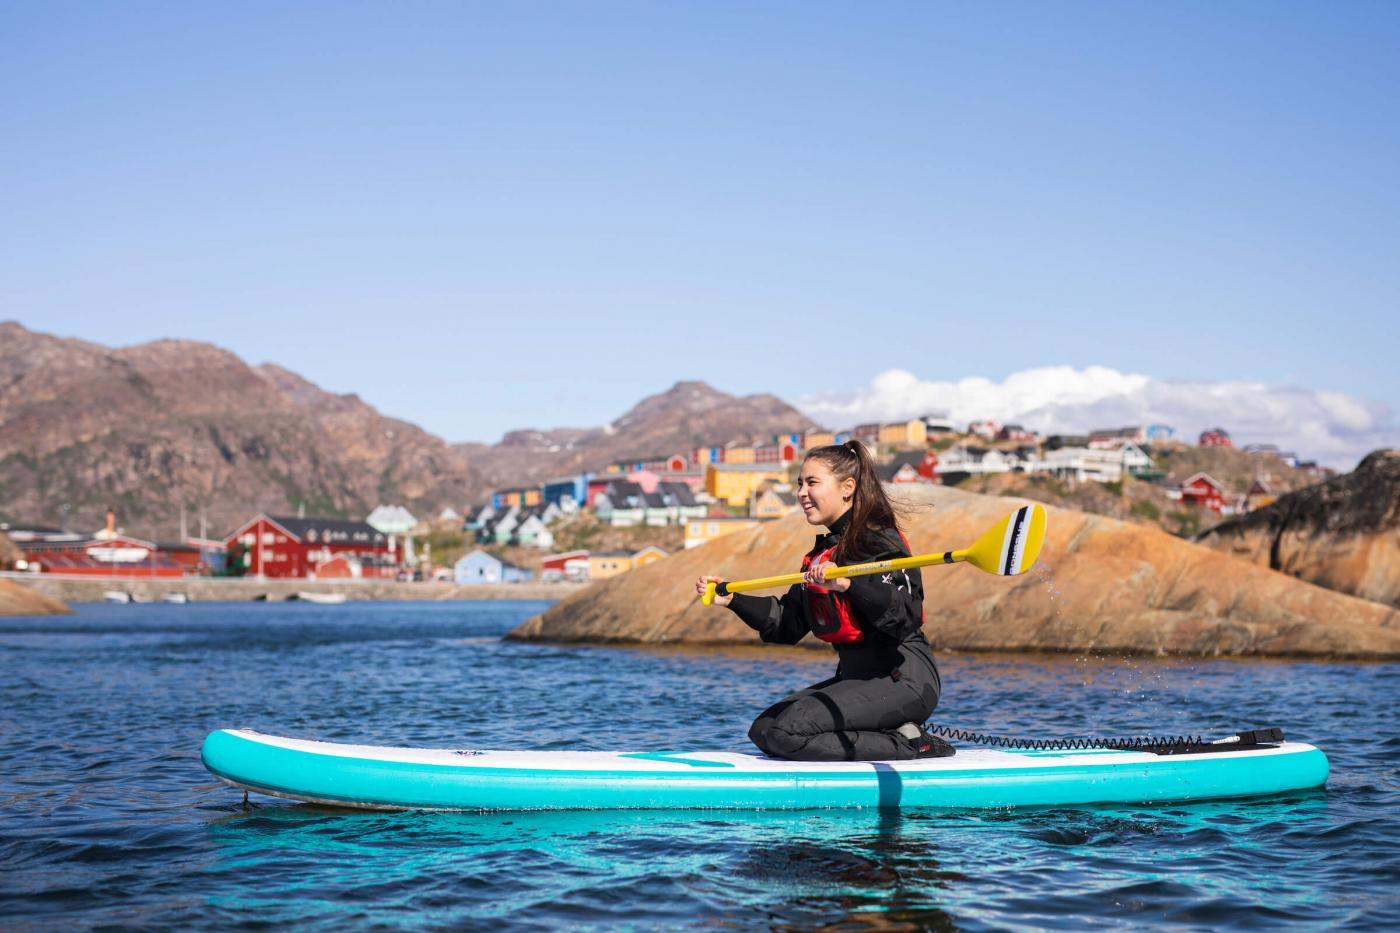 SUP near Sisimiut kneeling on her board. Photo - Aningaaq R. Carlsen, Visit Greenland